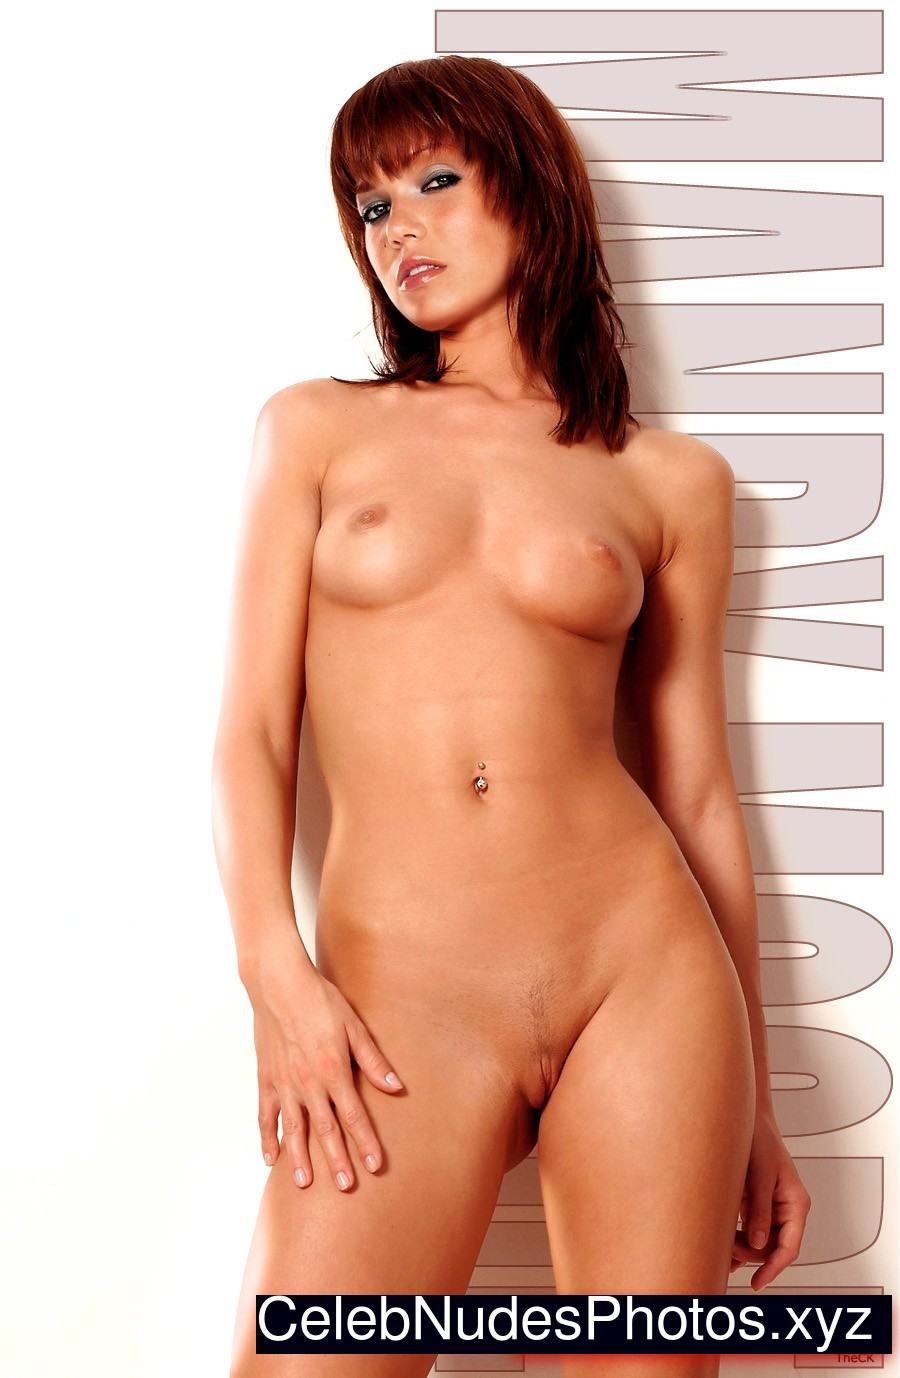 janette mc curdy nude